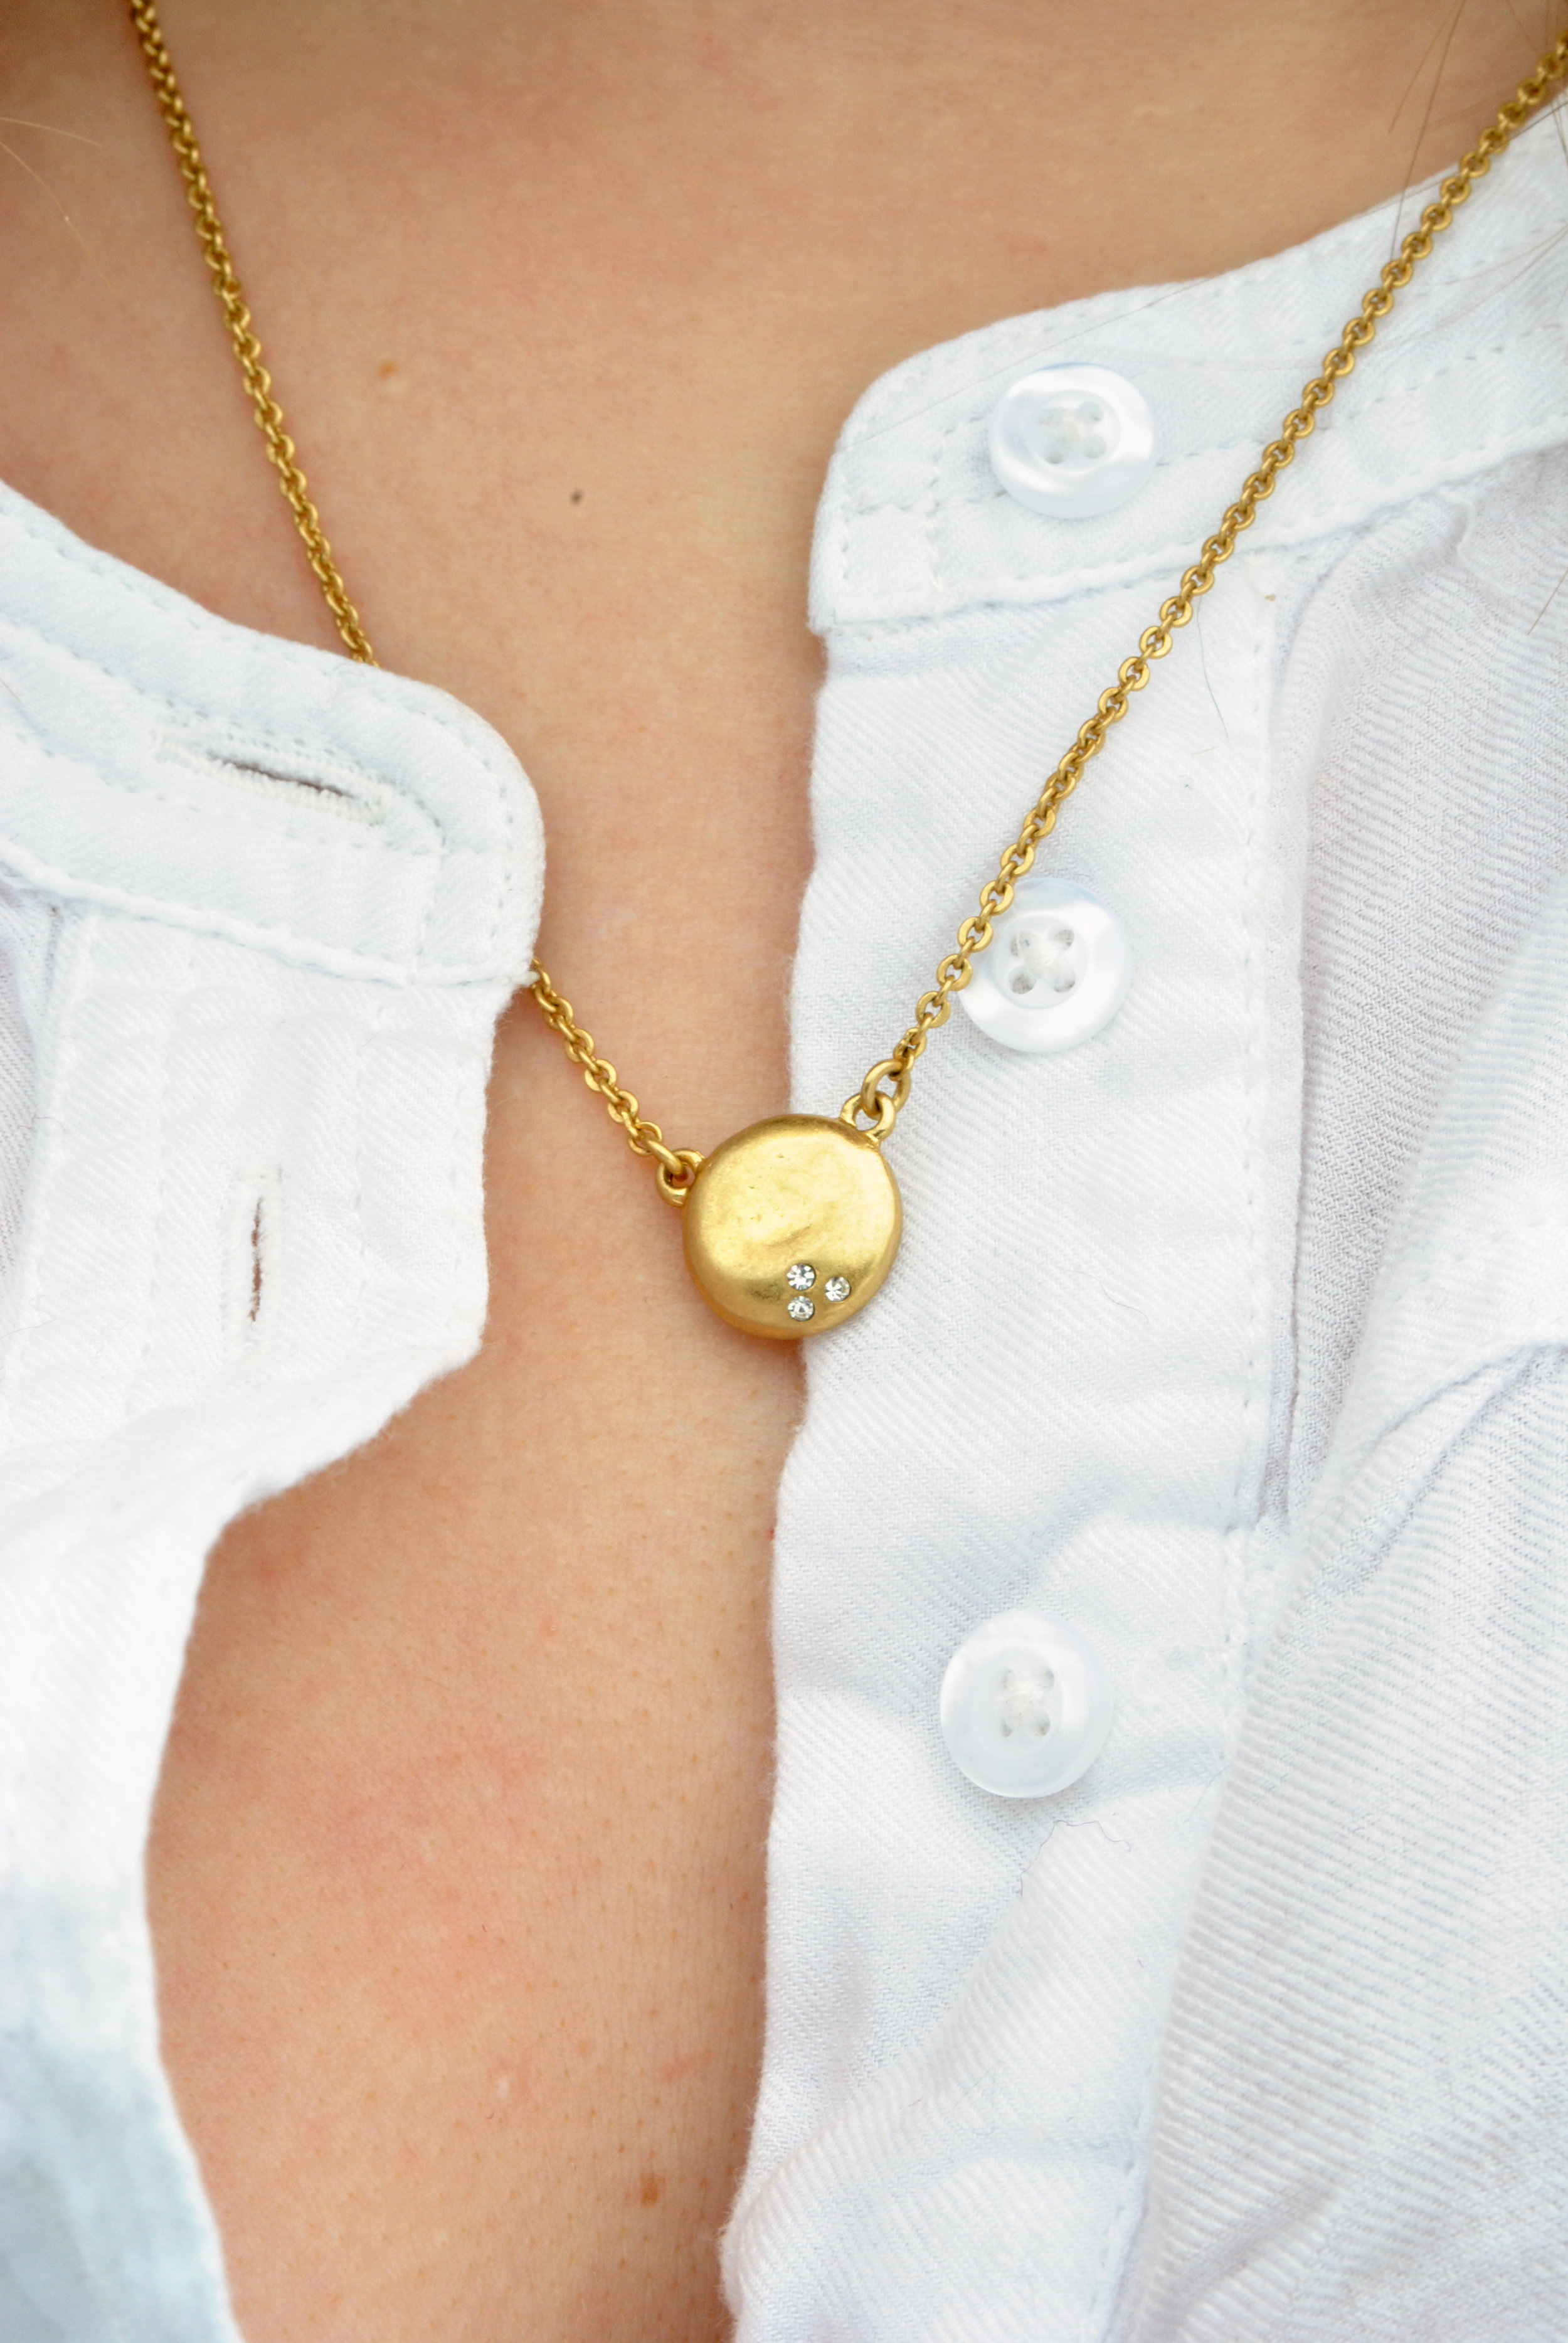 gold pendant necklace from Chloe+Isabel | thoughtfulwish